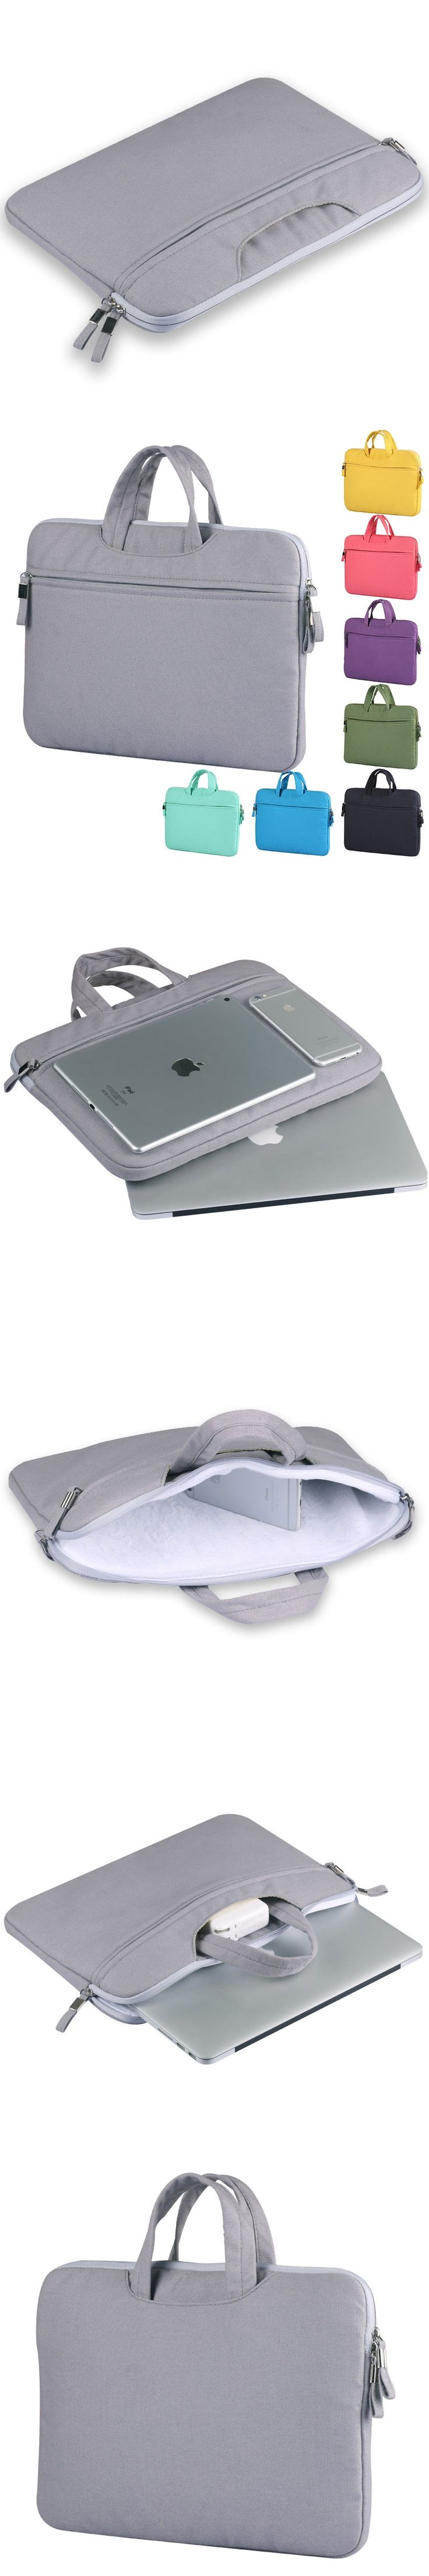 """Canvas Laptop Sleeve Case Carry Bag Cover +zipper pouch For 11"""" 13"""" 15"""" MacBook Air/Pro,Retina,Tablet,Mobile Phone"""